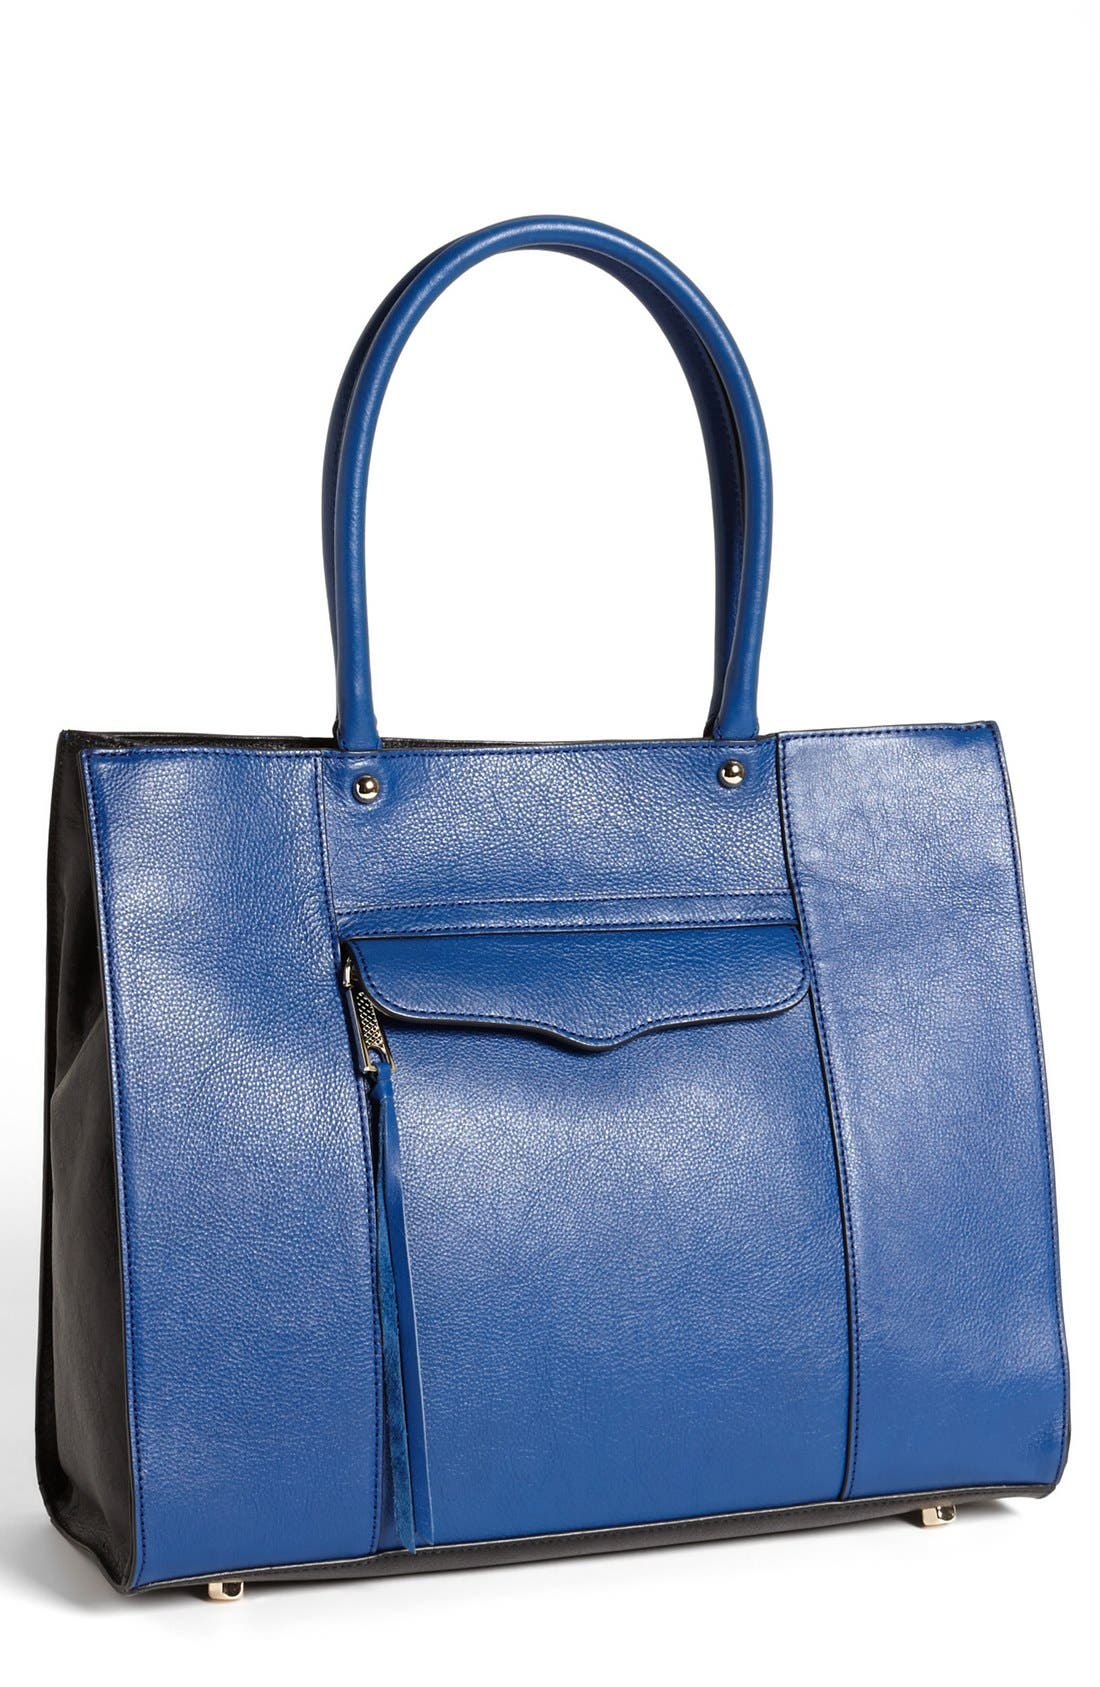 Main Image - Rebecca Minkoff 'Medium MAB' Colorblock Tote